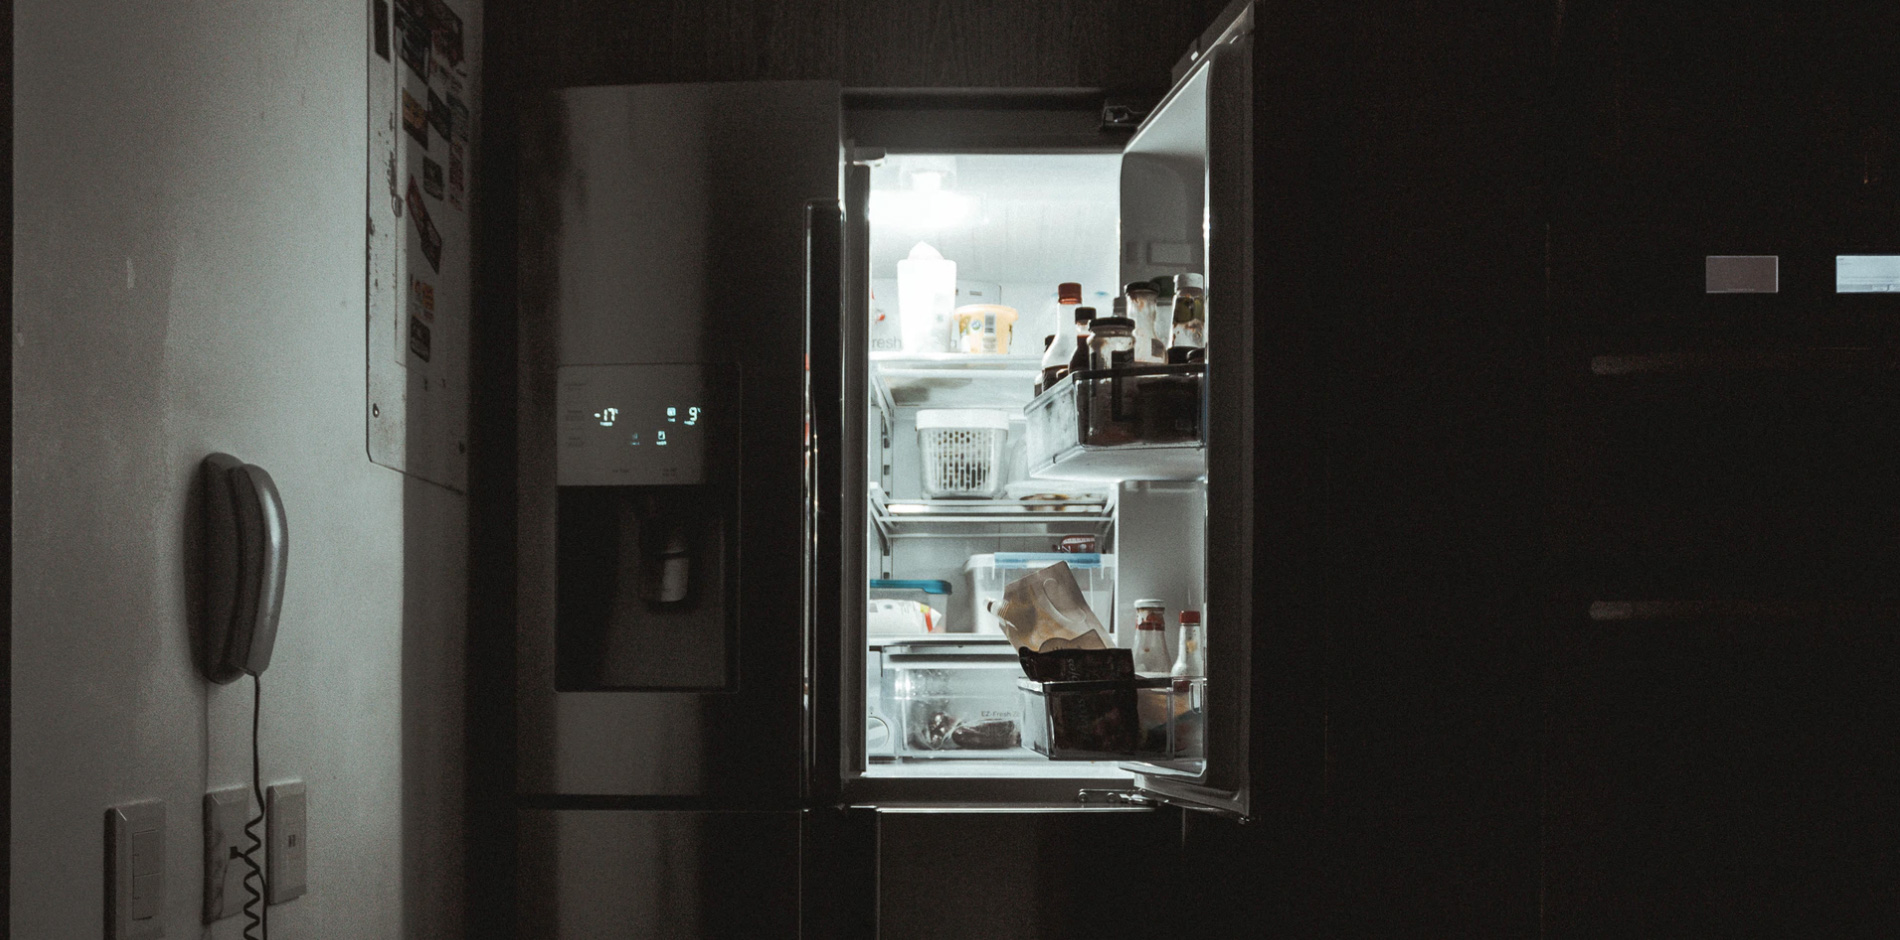 An open fridge door with food inside